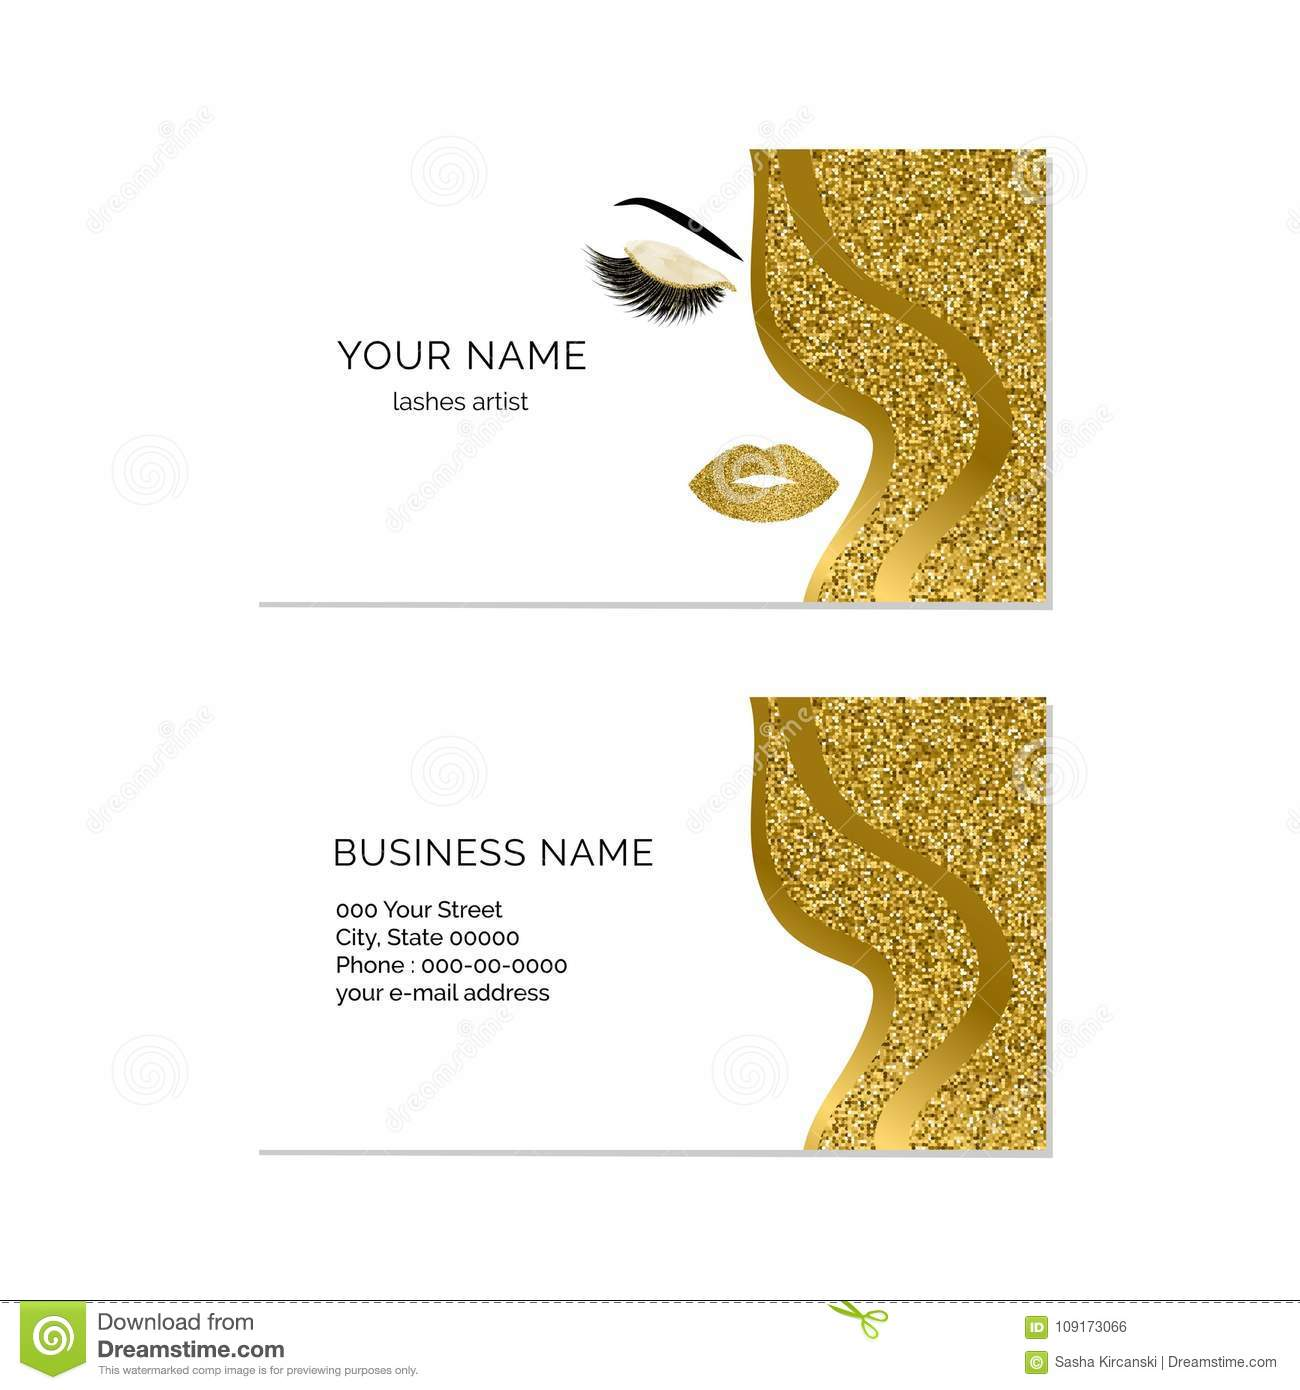 Makeup artist business card vector template stock vector royalty free vector download makeup artist business card reheart Gallery